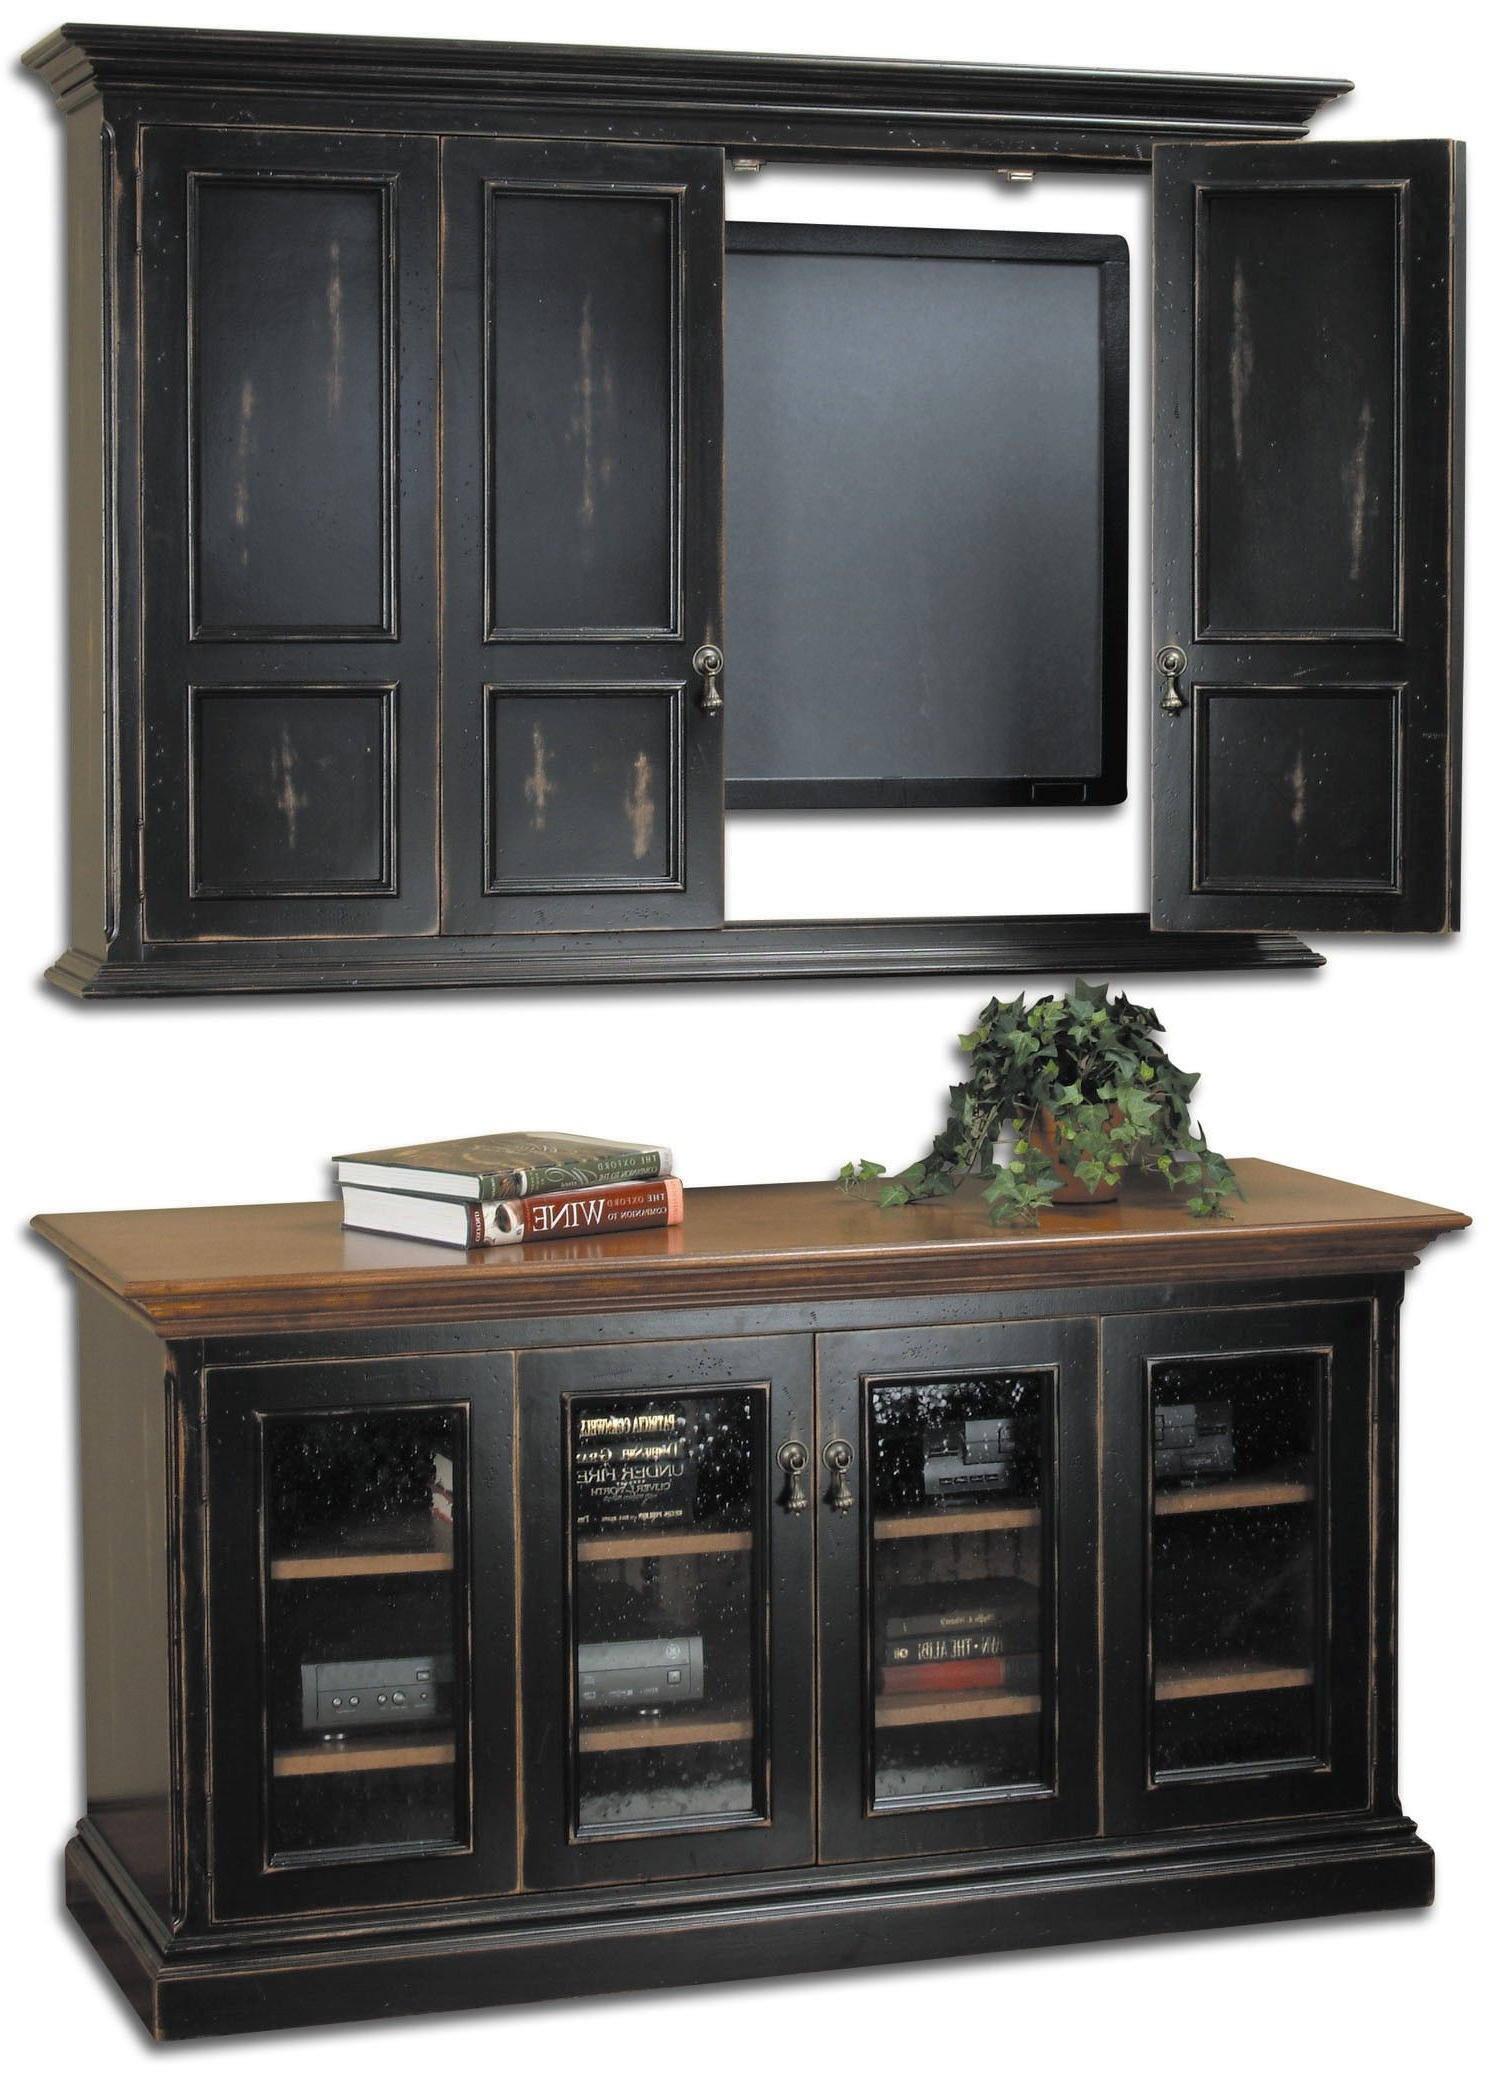 2018 Wall Mounted Tv Cabinets For Flat Screens With Doors Regarding Country Classics Painted Furniture, Hillsboro Flat Screen Tv Wall (View 16 of 20)